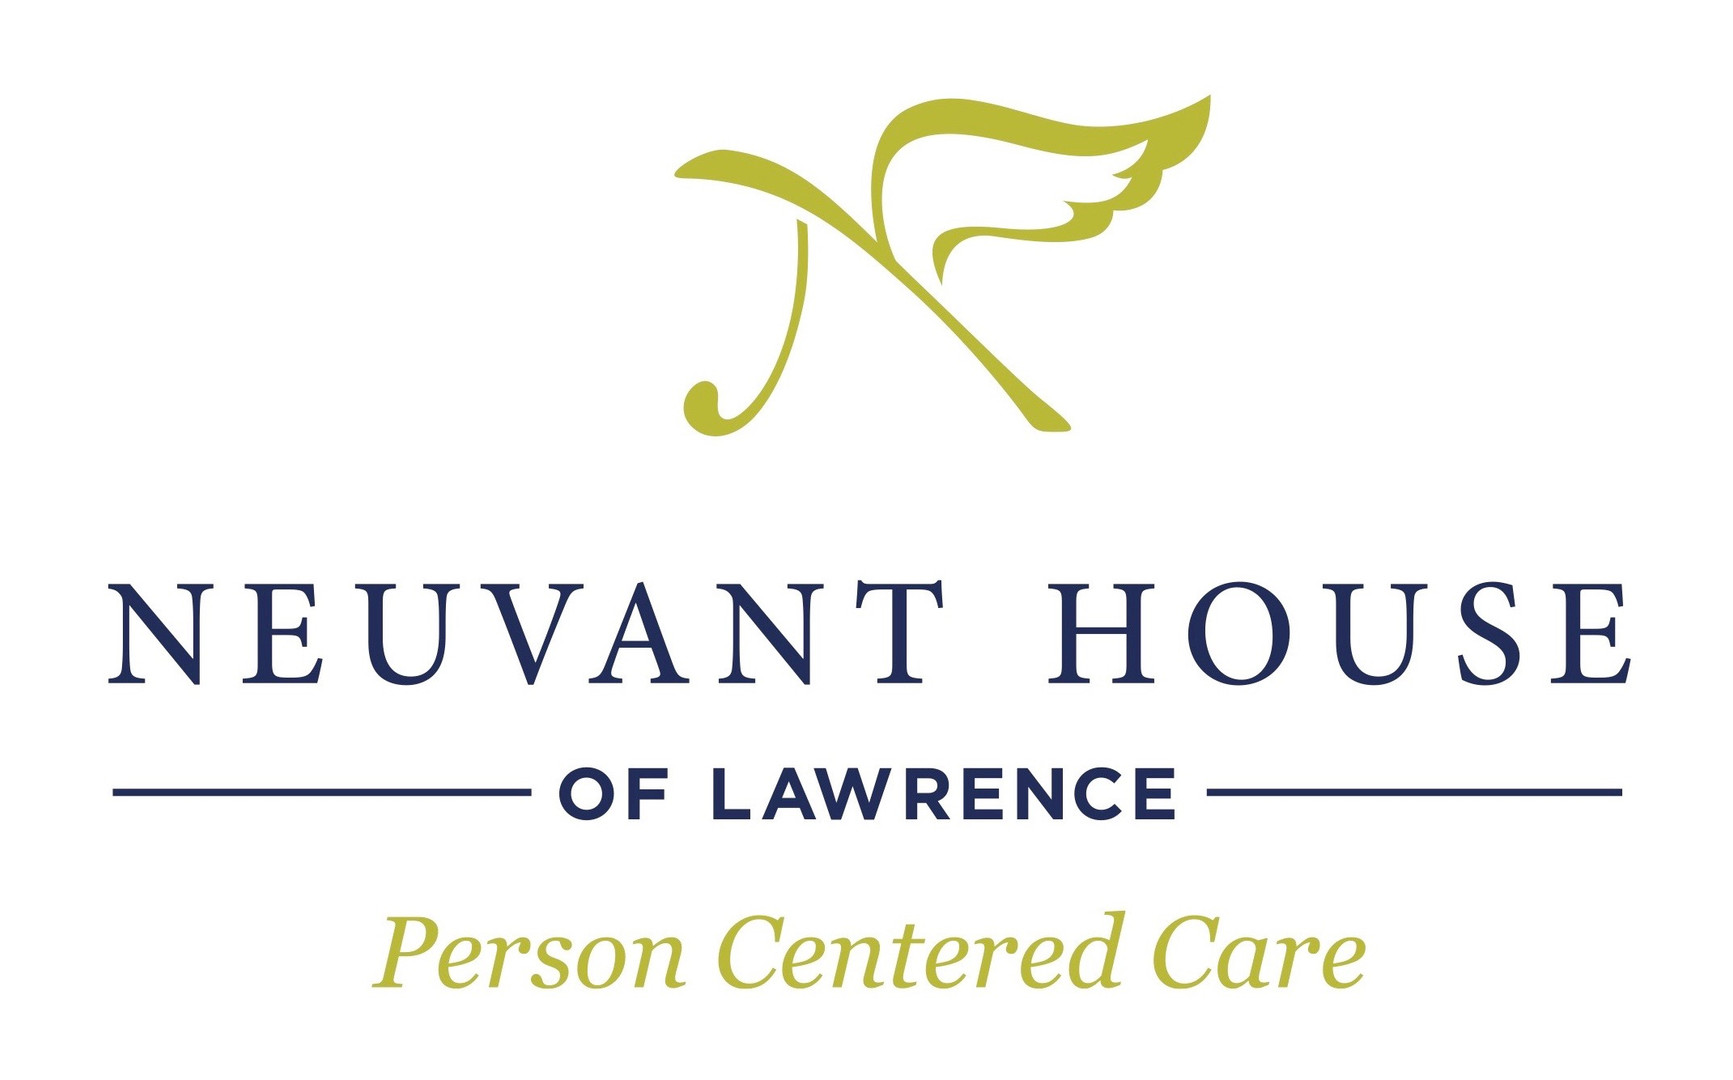 Neuvant House of Lawrence